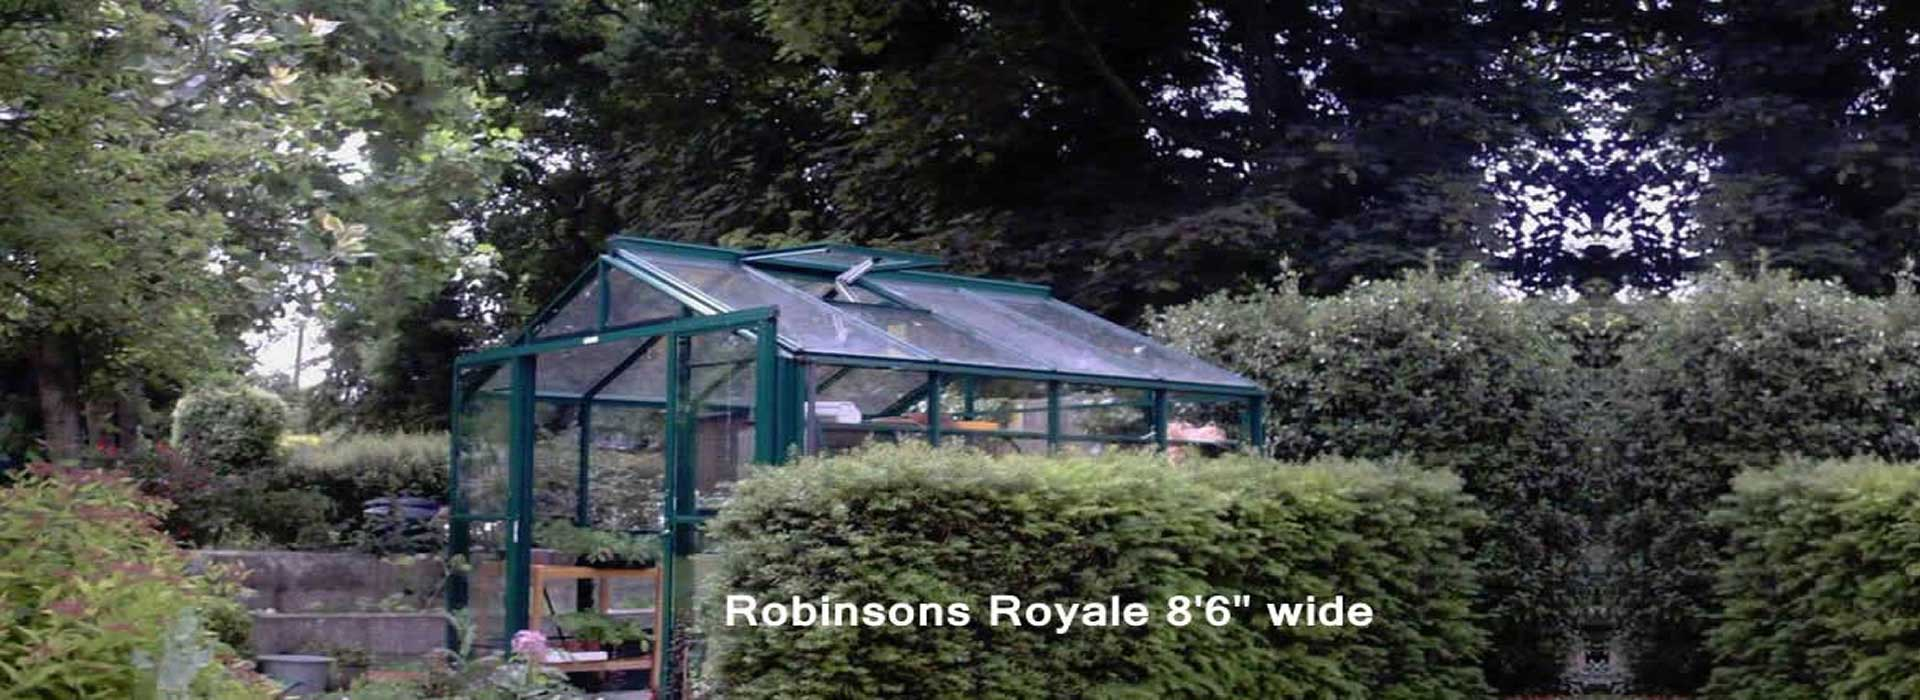 Robinsons Royale Greenhouses